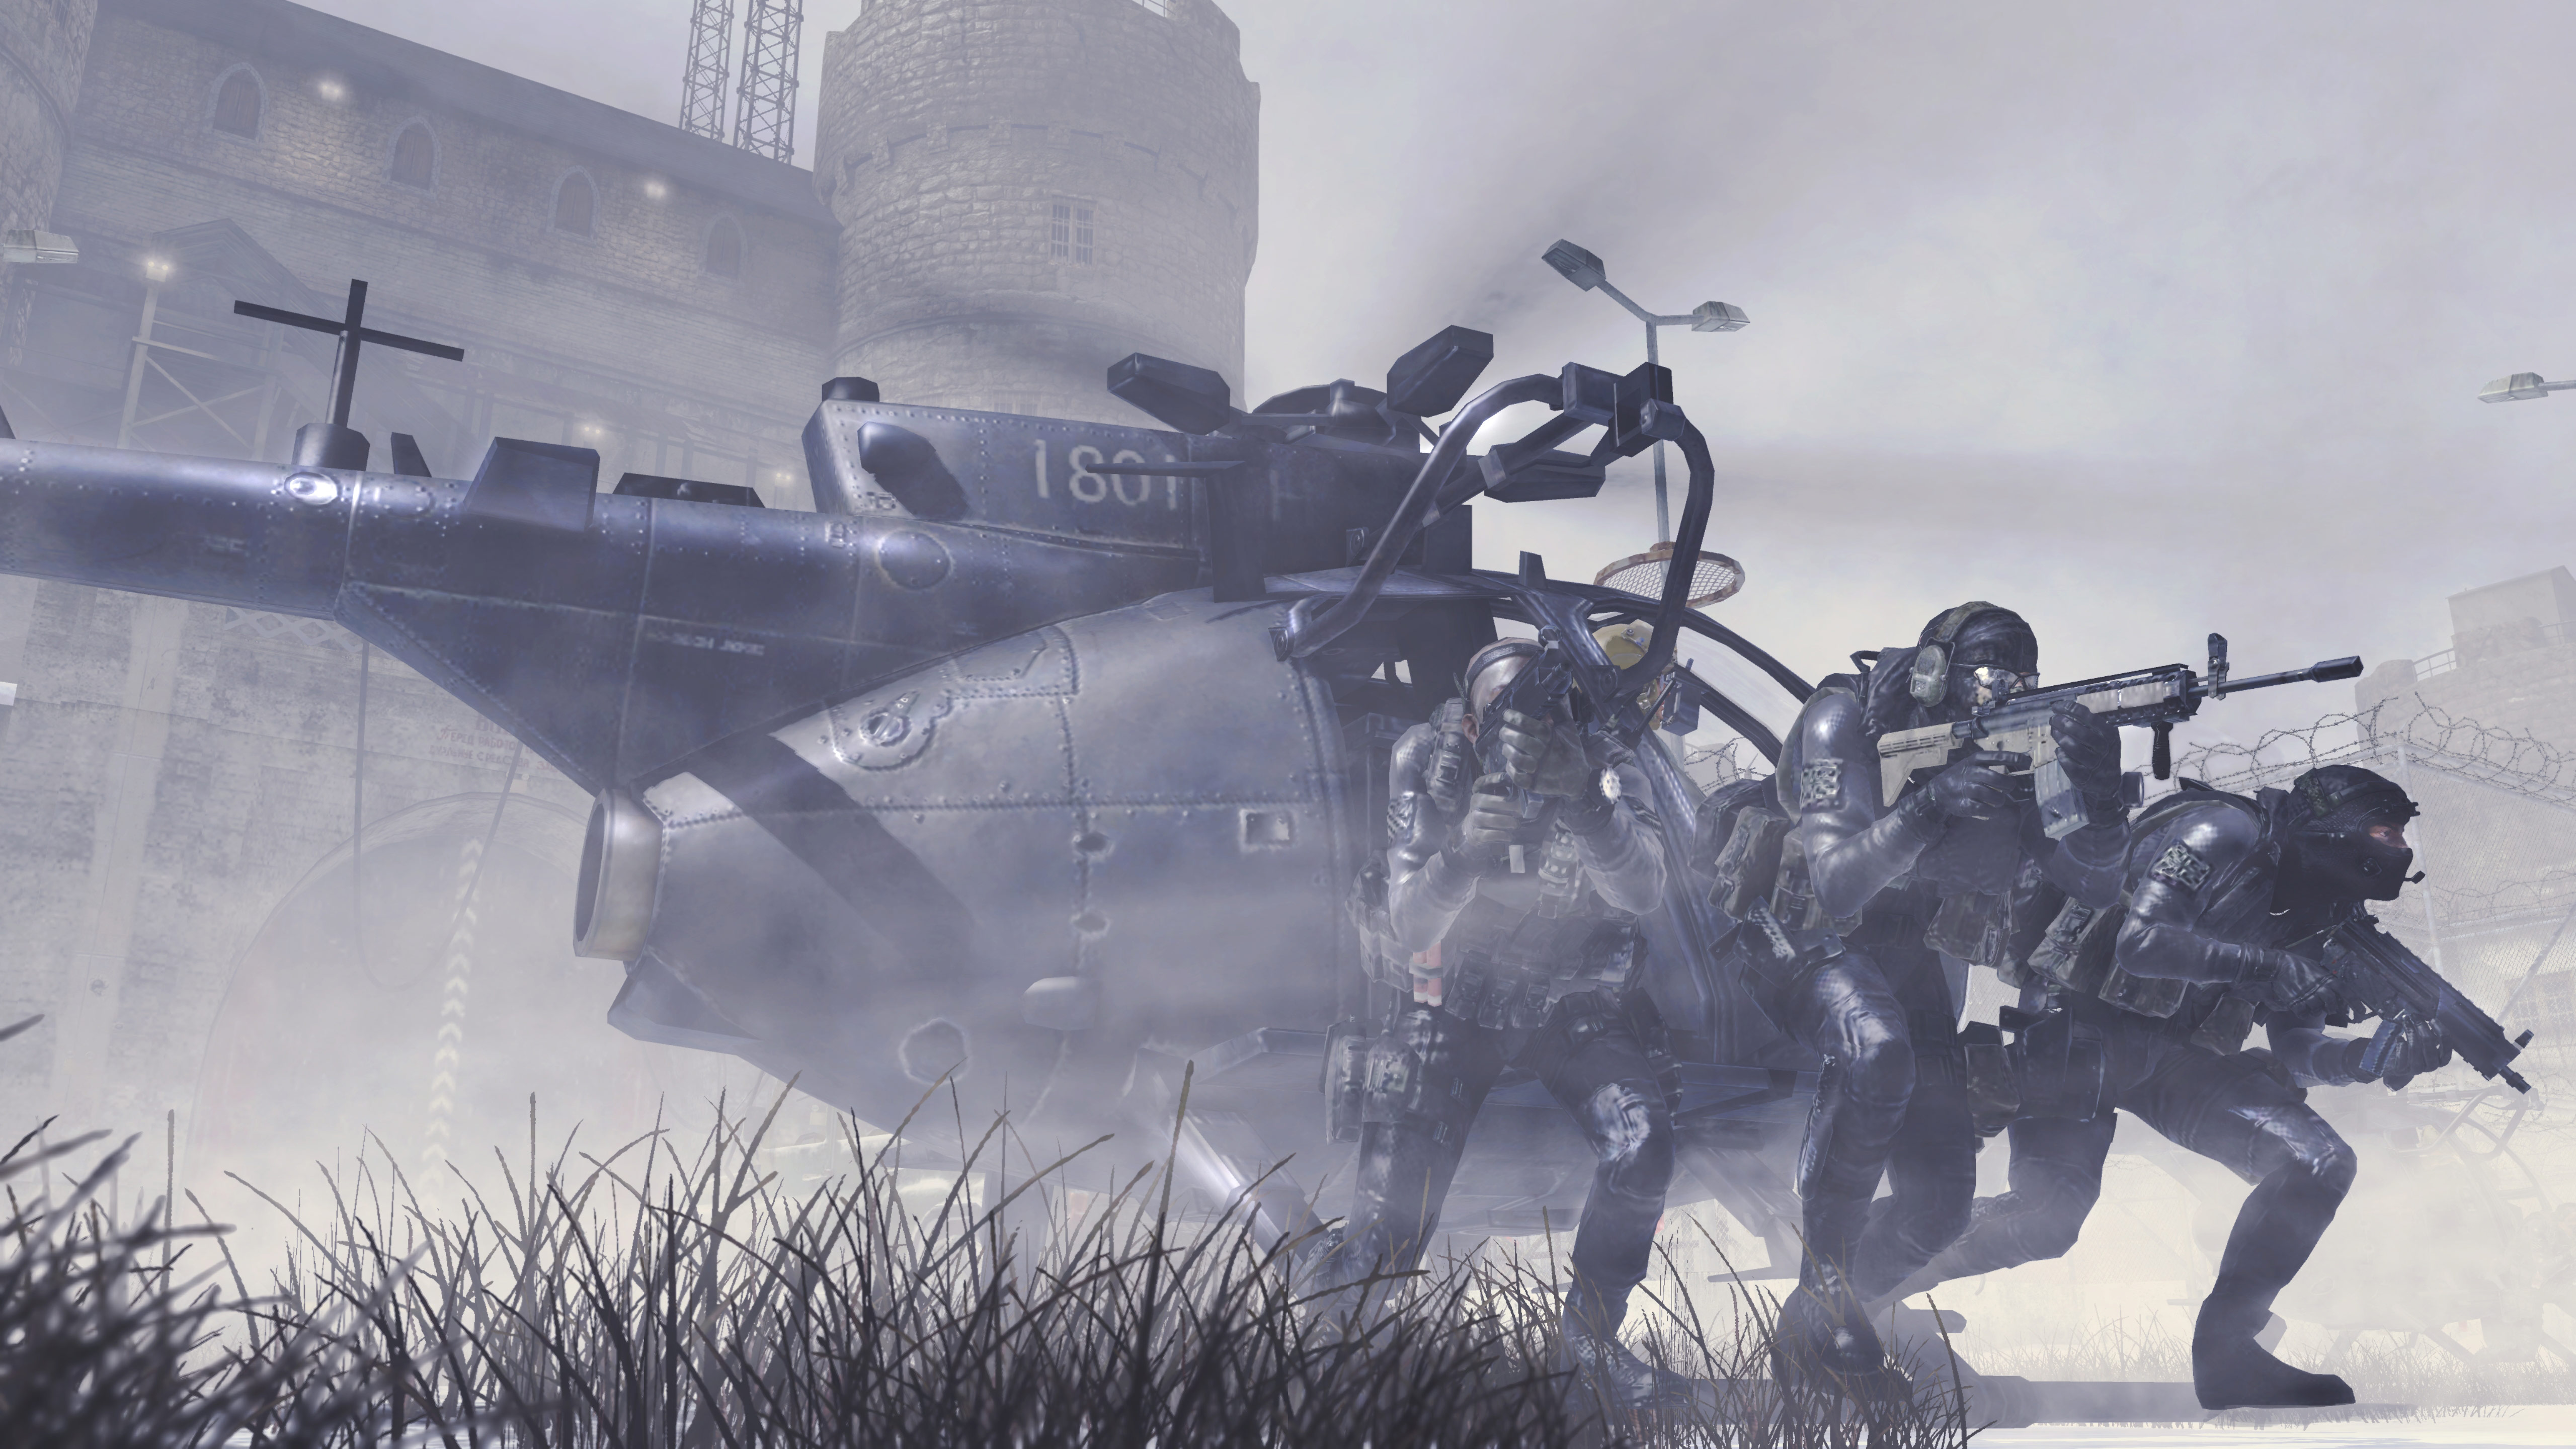 Spectacle of Career Professionalism Modern Warfare 4